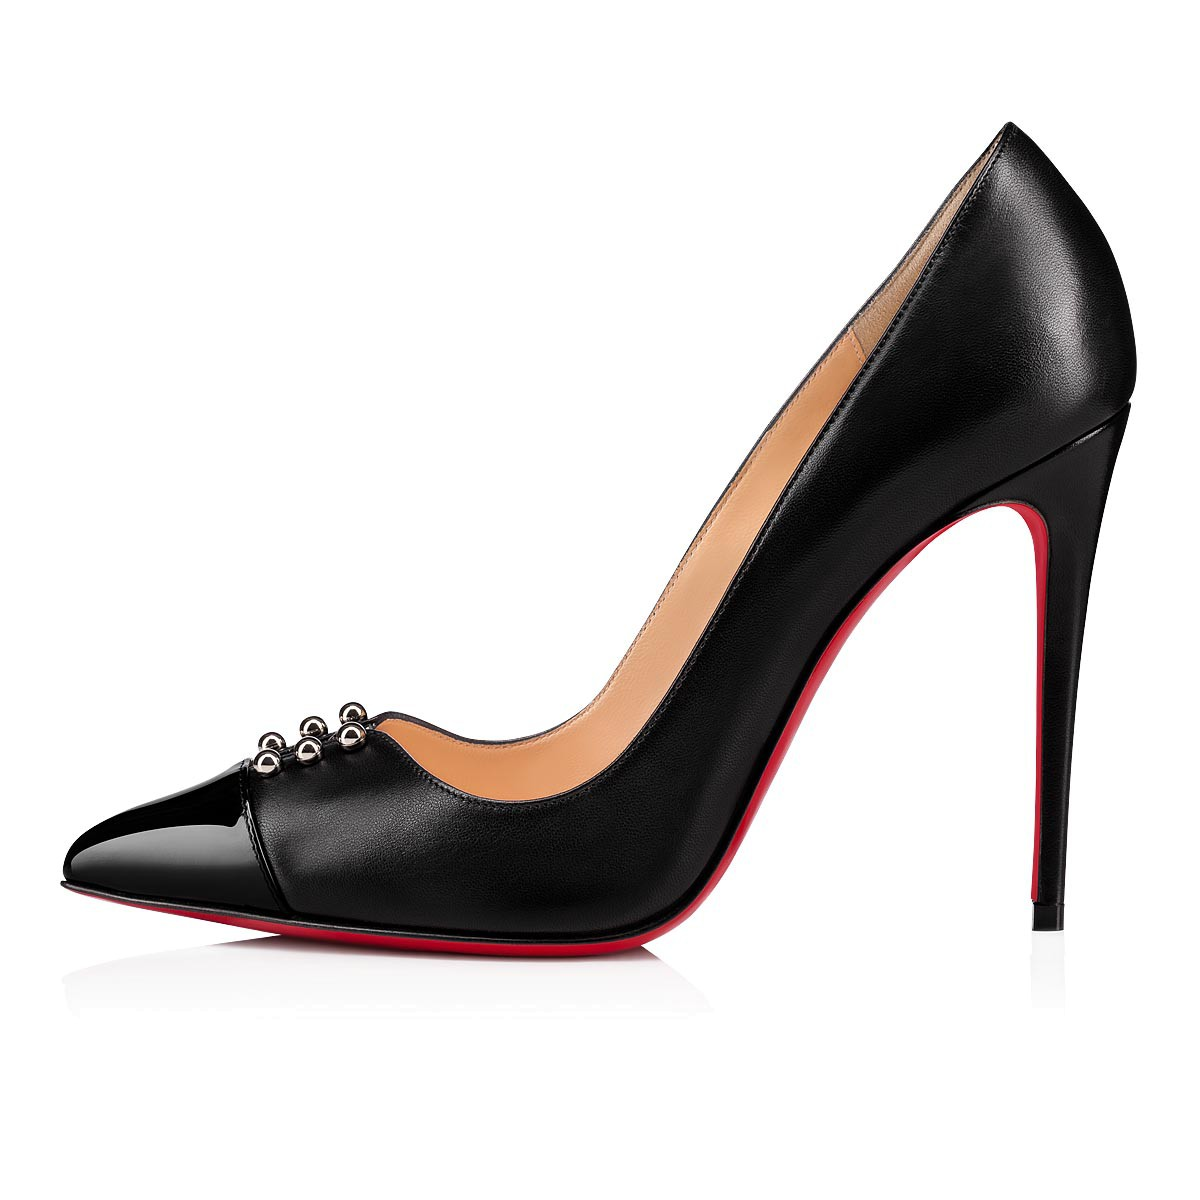 Women Shoes - Predupump 100 Nappa - Christian Louboutin